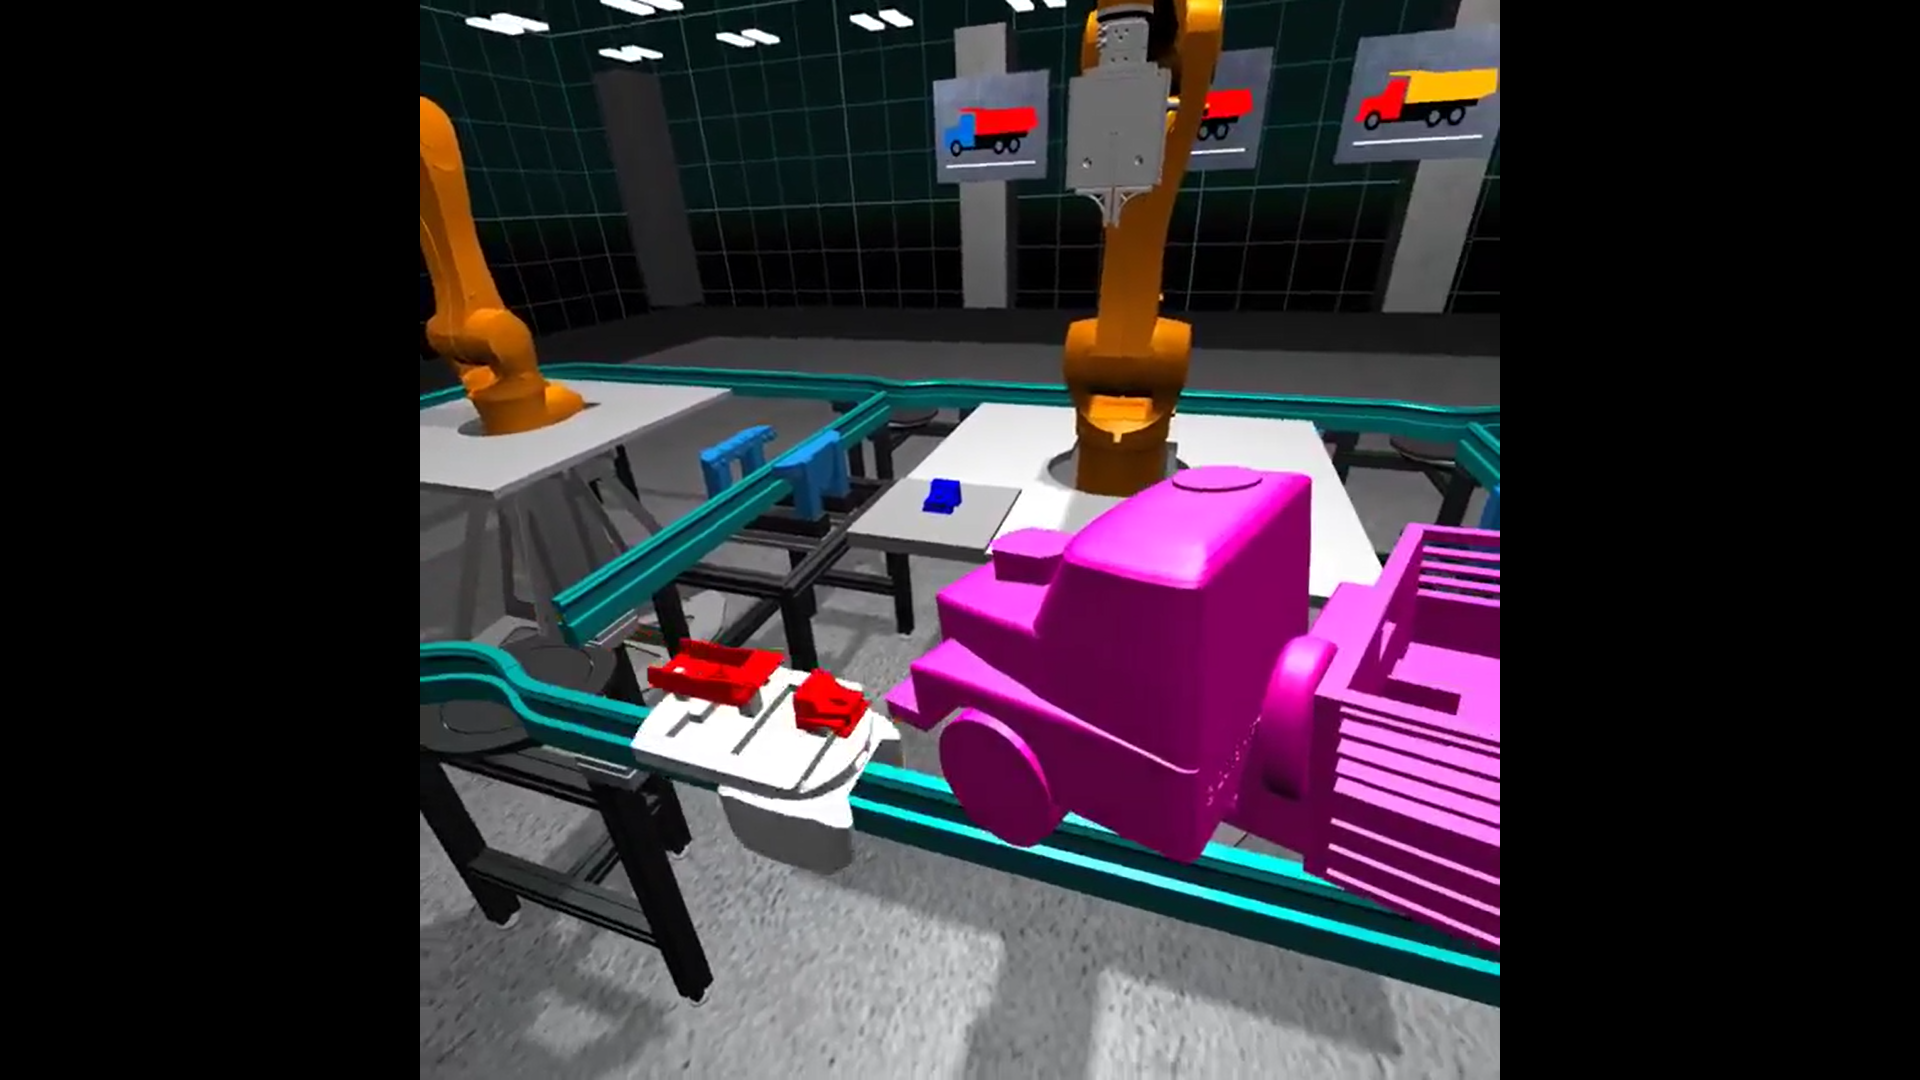 5. <strong>Testbed in VR</strong>